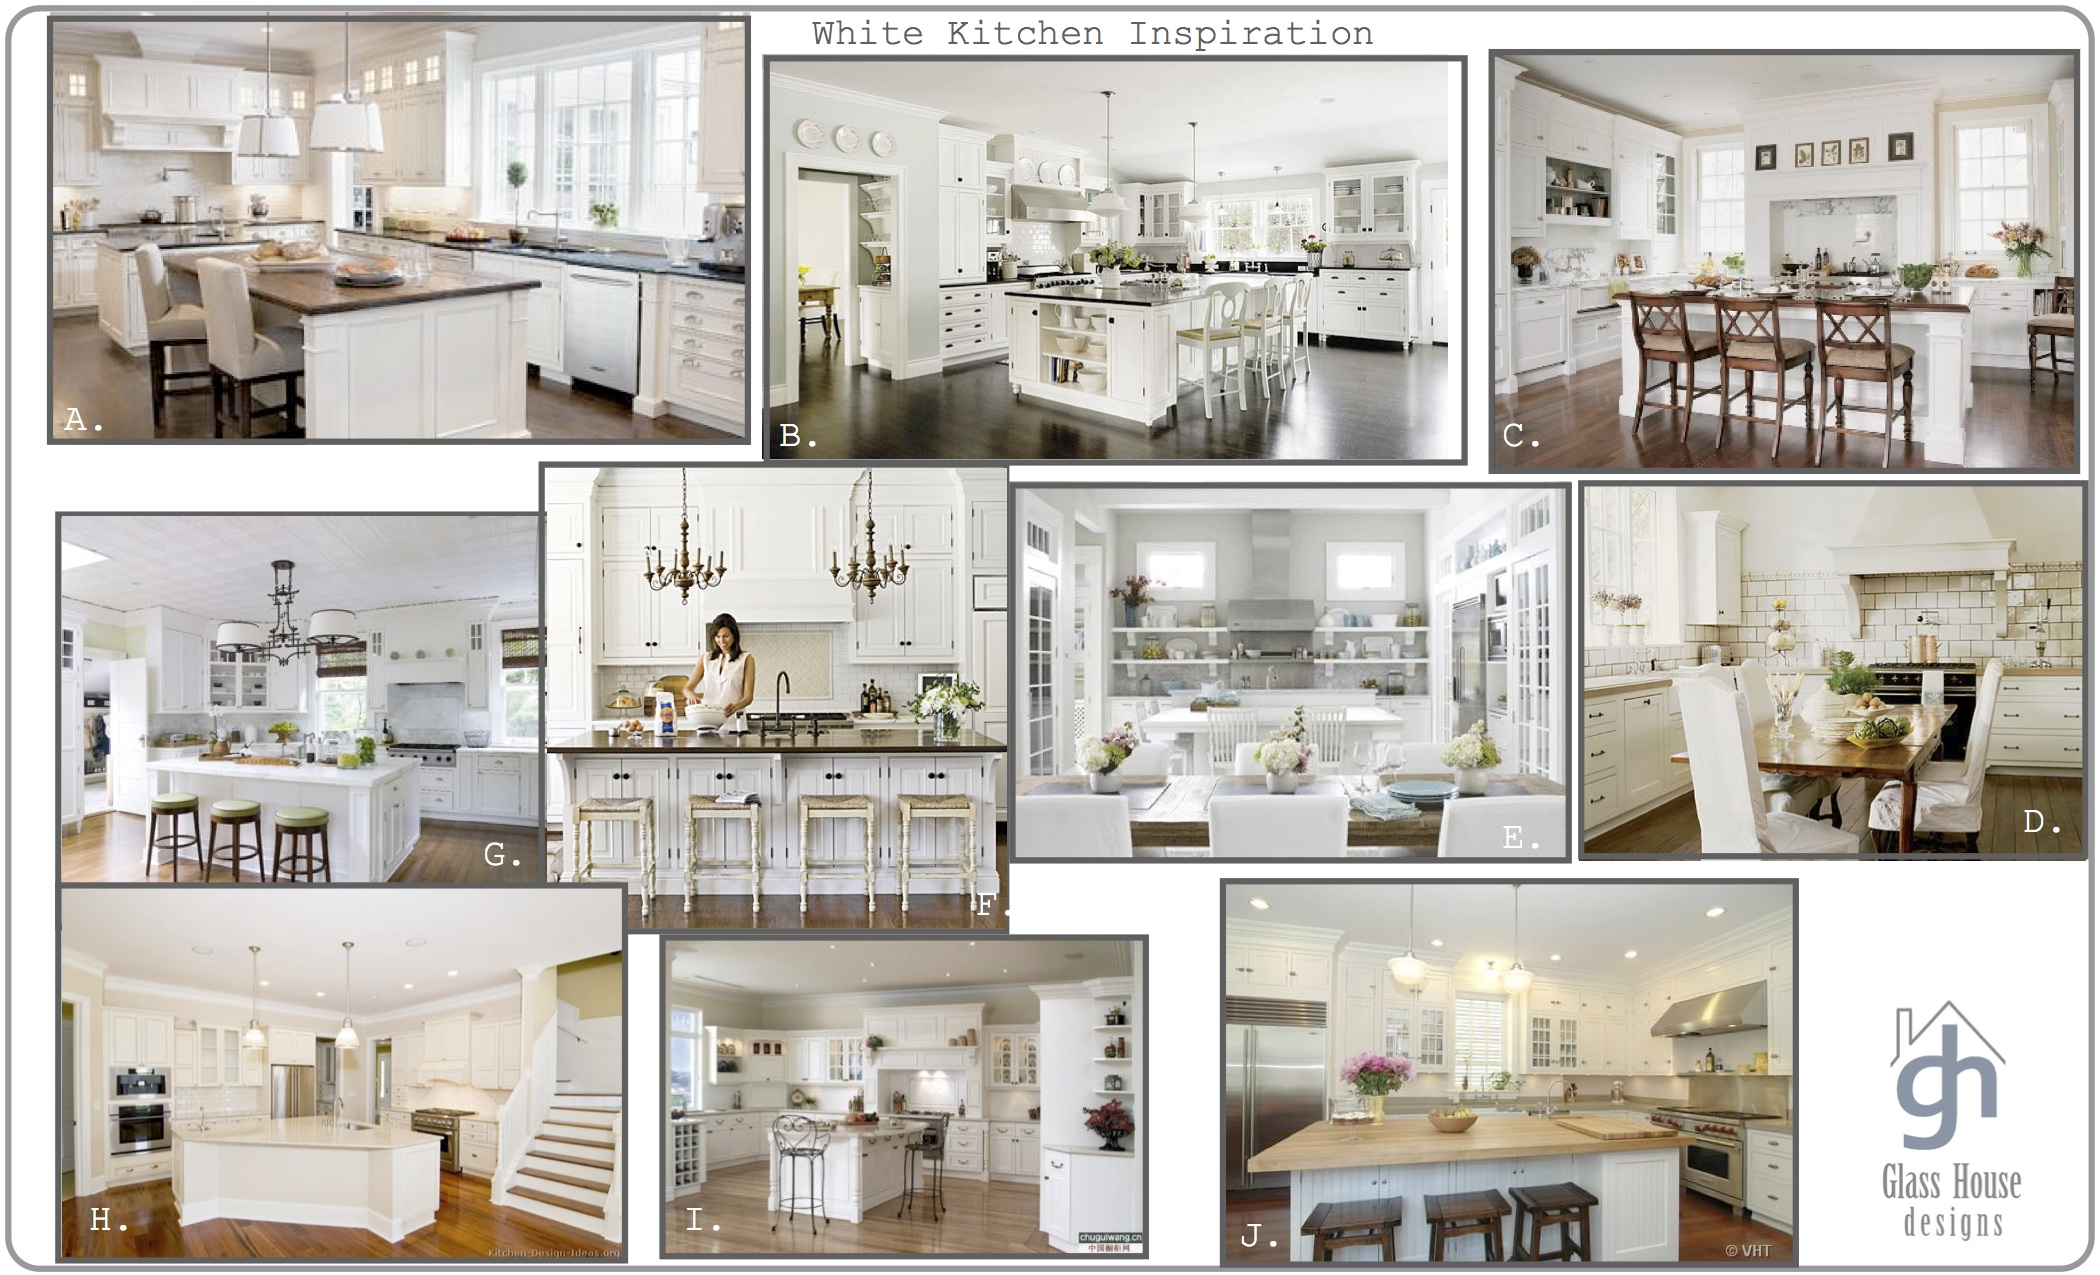 White kitchen design inspiration home ideas pinterest for Kitchen decor inspiration